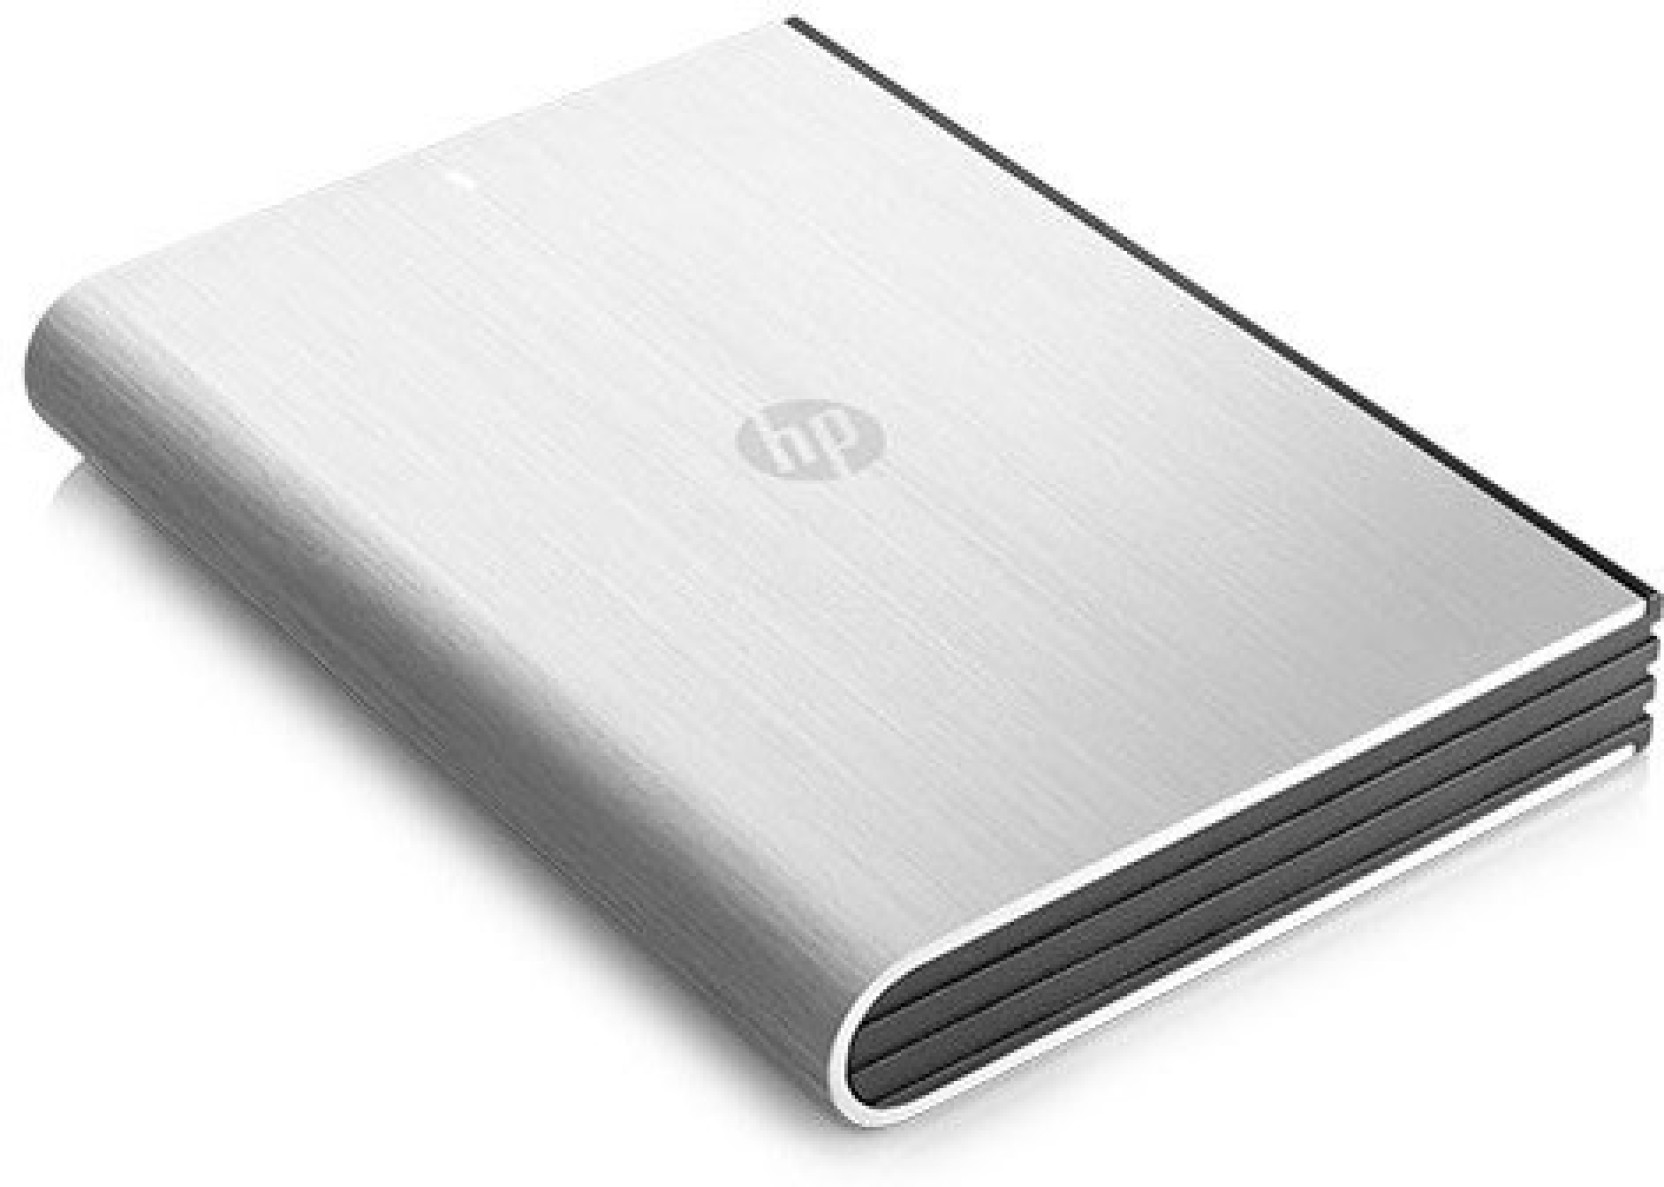 HP 1 TB Wired External Hard Disk Drive - HP : Flipkart.com